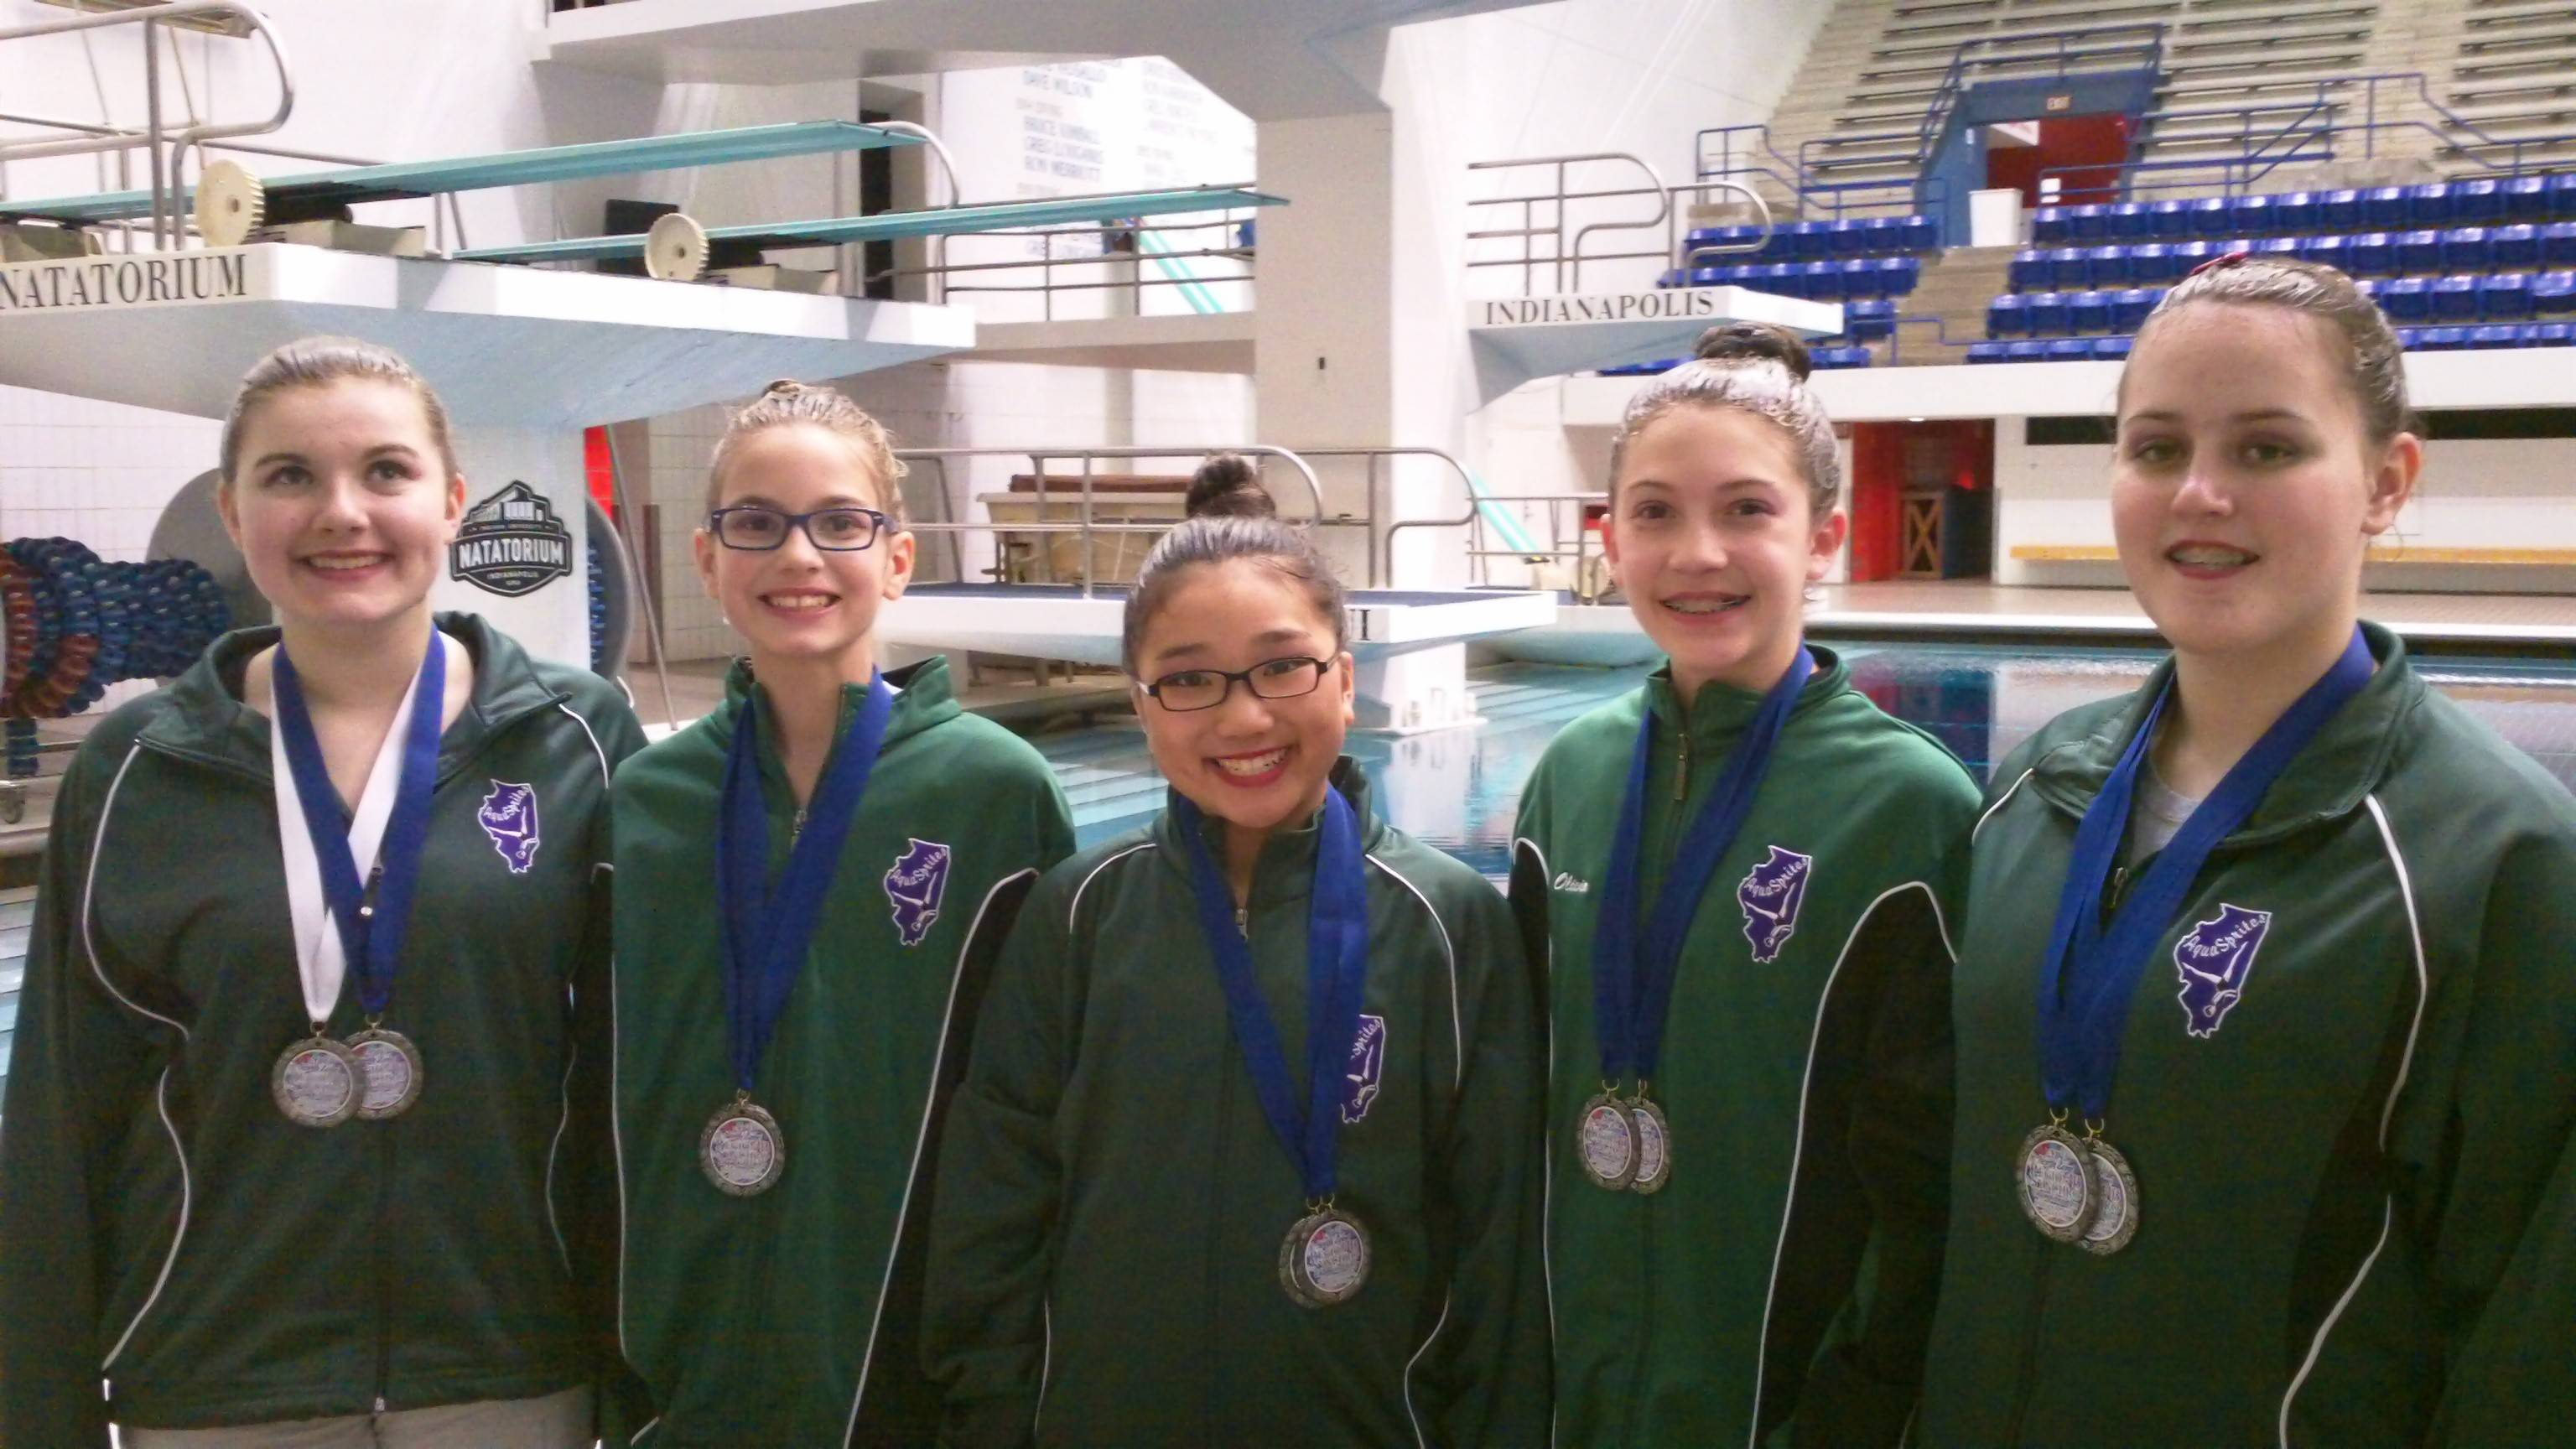 The AquaSprites 13-15 Team, from left, Clemence Rodney, Rebecca Garcia Stam, Chaewon Park, and Olivia Vasilakopoulos with their regional championship medals.